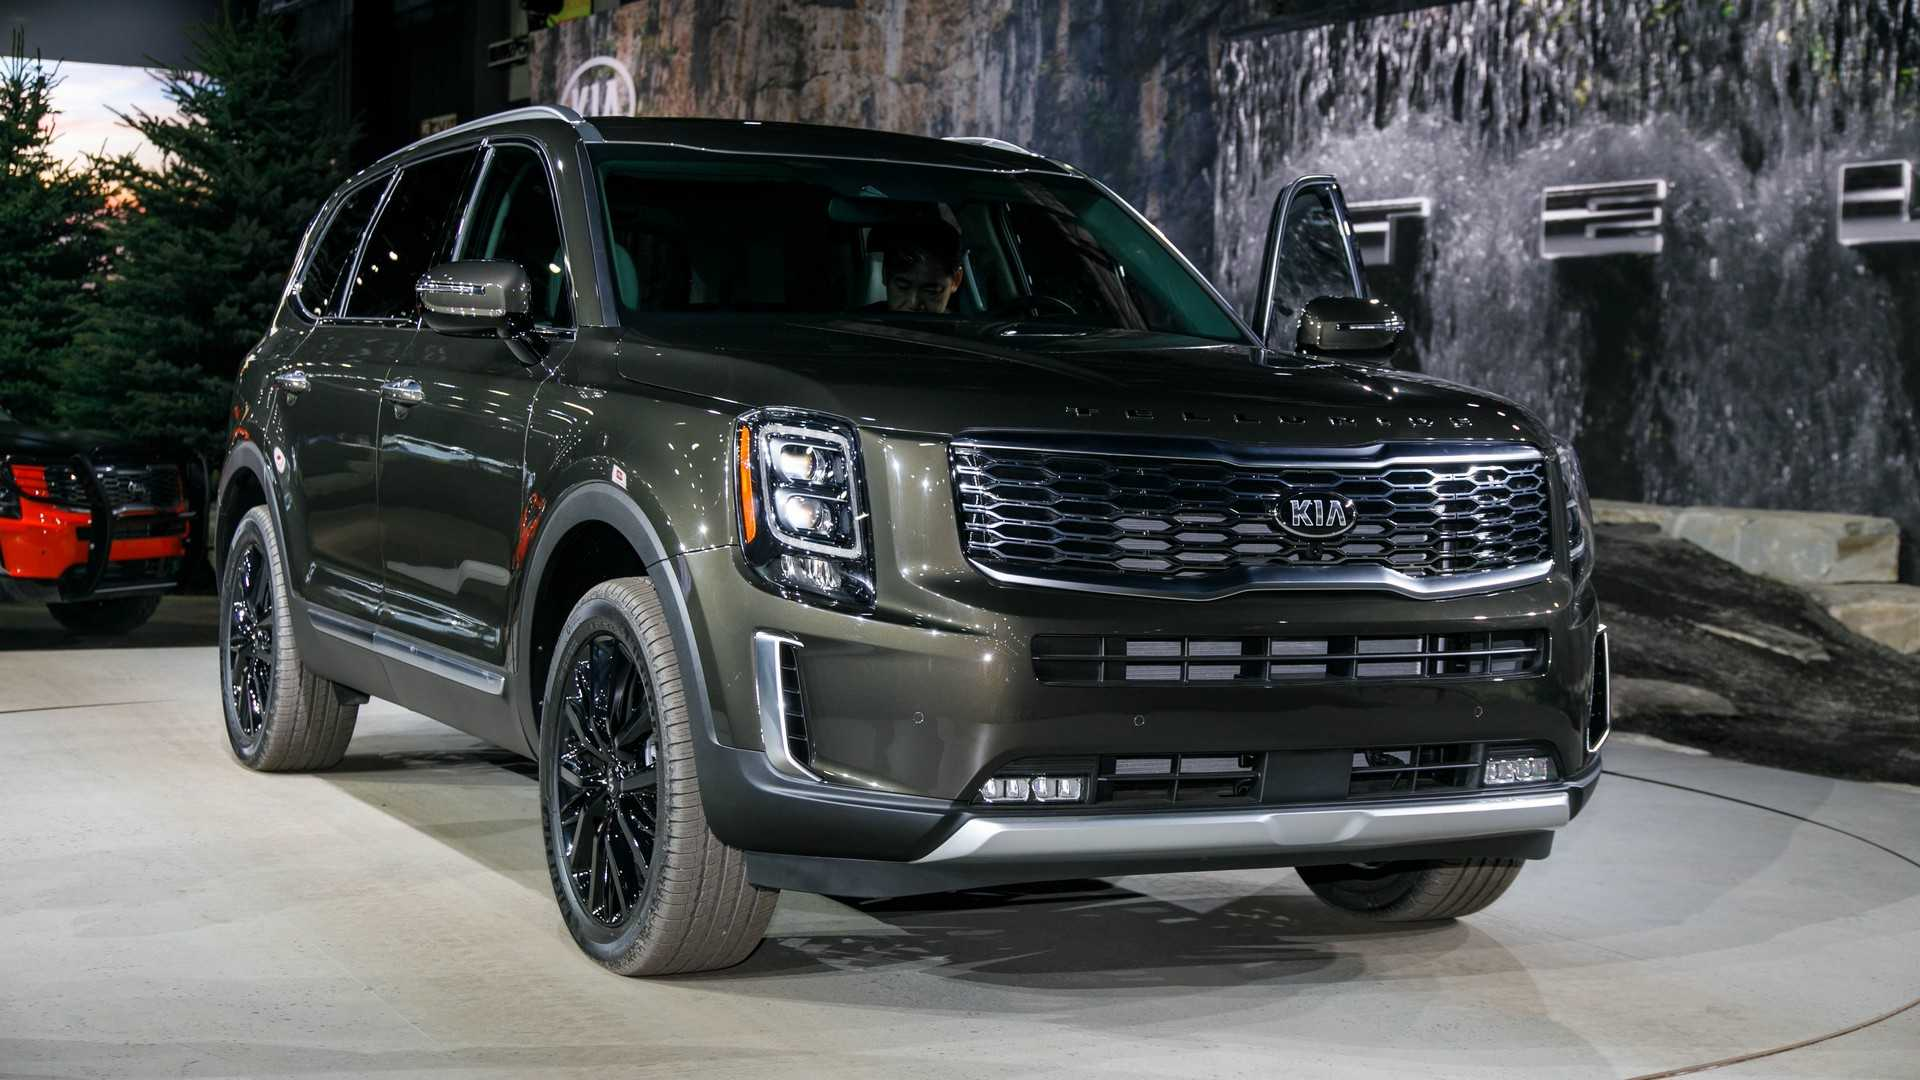 88 The Best Kia Telluride 2020 Release Date Spesification